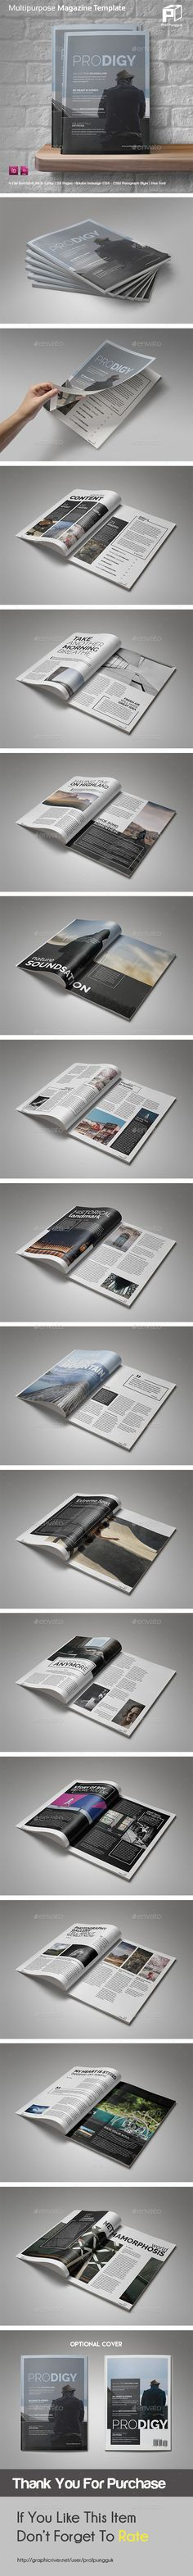 Multipurpose Magazine Vol.4 - Magazines Print Templates Download here : https://graphicriver.net/item/multipurpose-magazine-vol4/17416439?s_rank=147&ref=Al-fatih